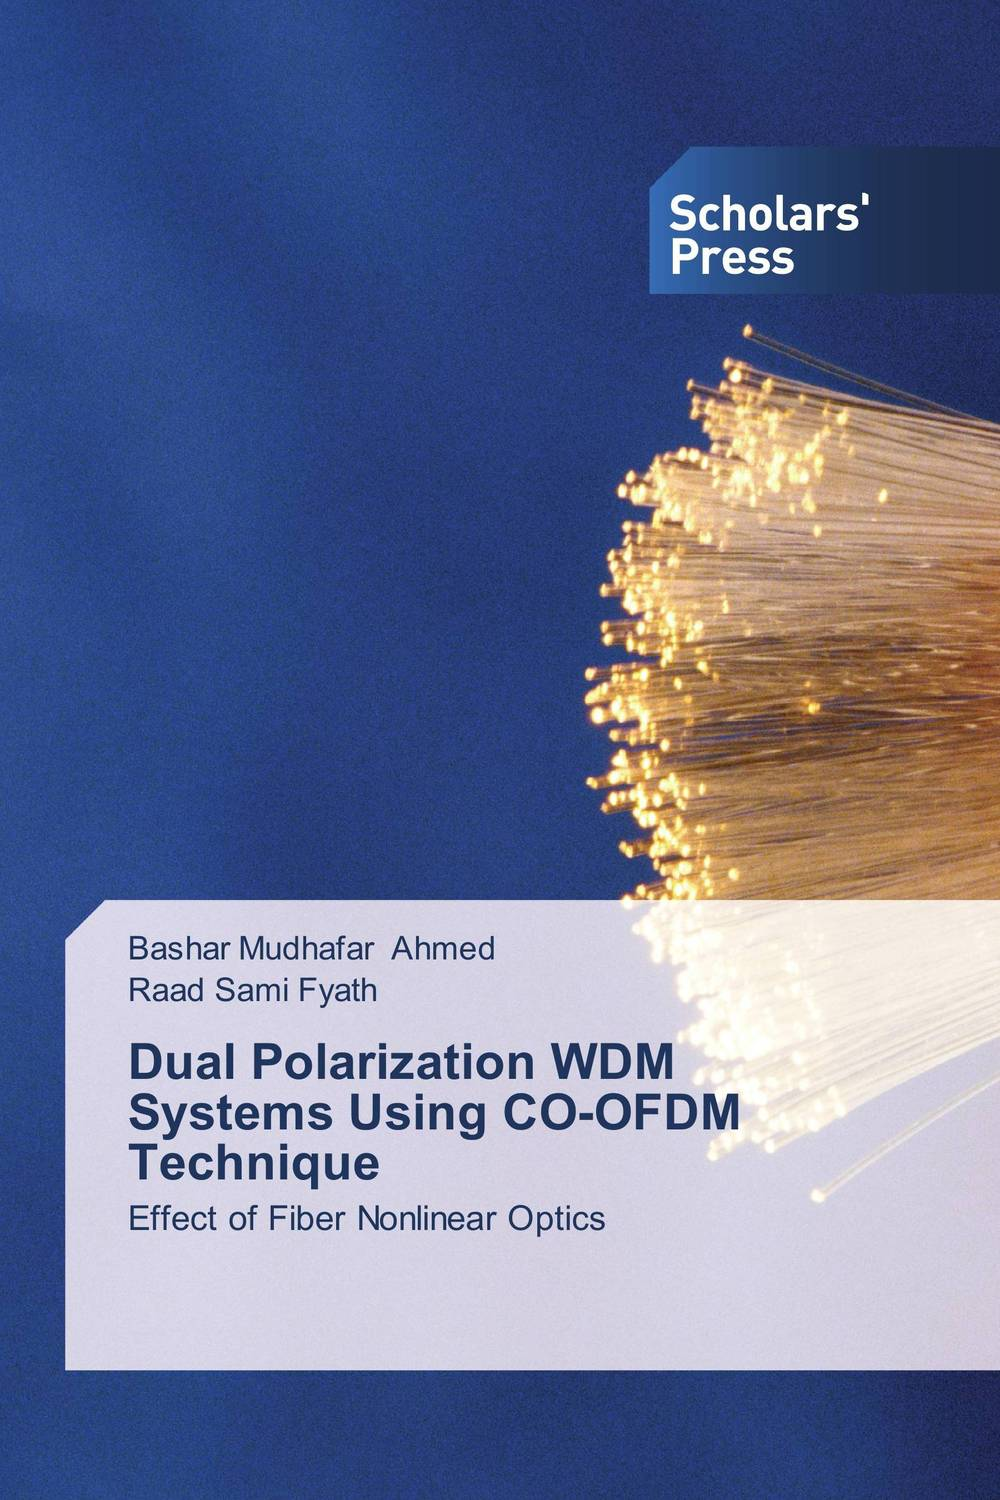 Dual Polarization WDM Systems Using CO-OFDM Technique a novel separation technique using hydrotropes